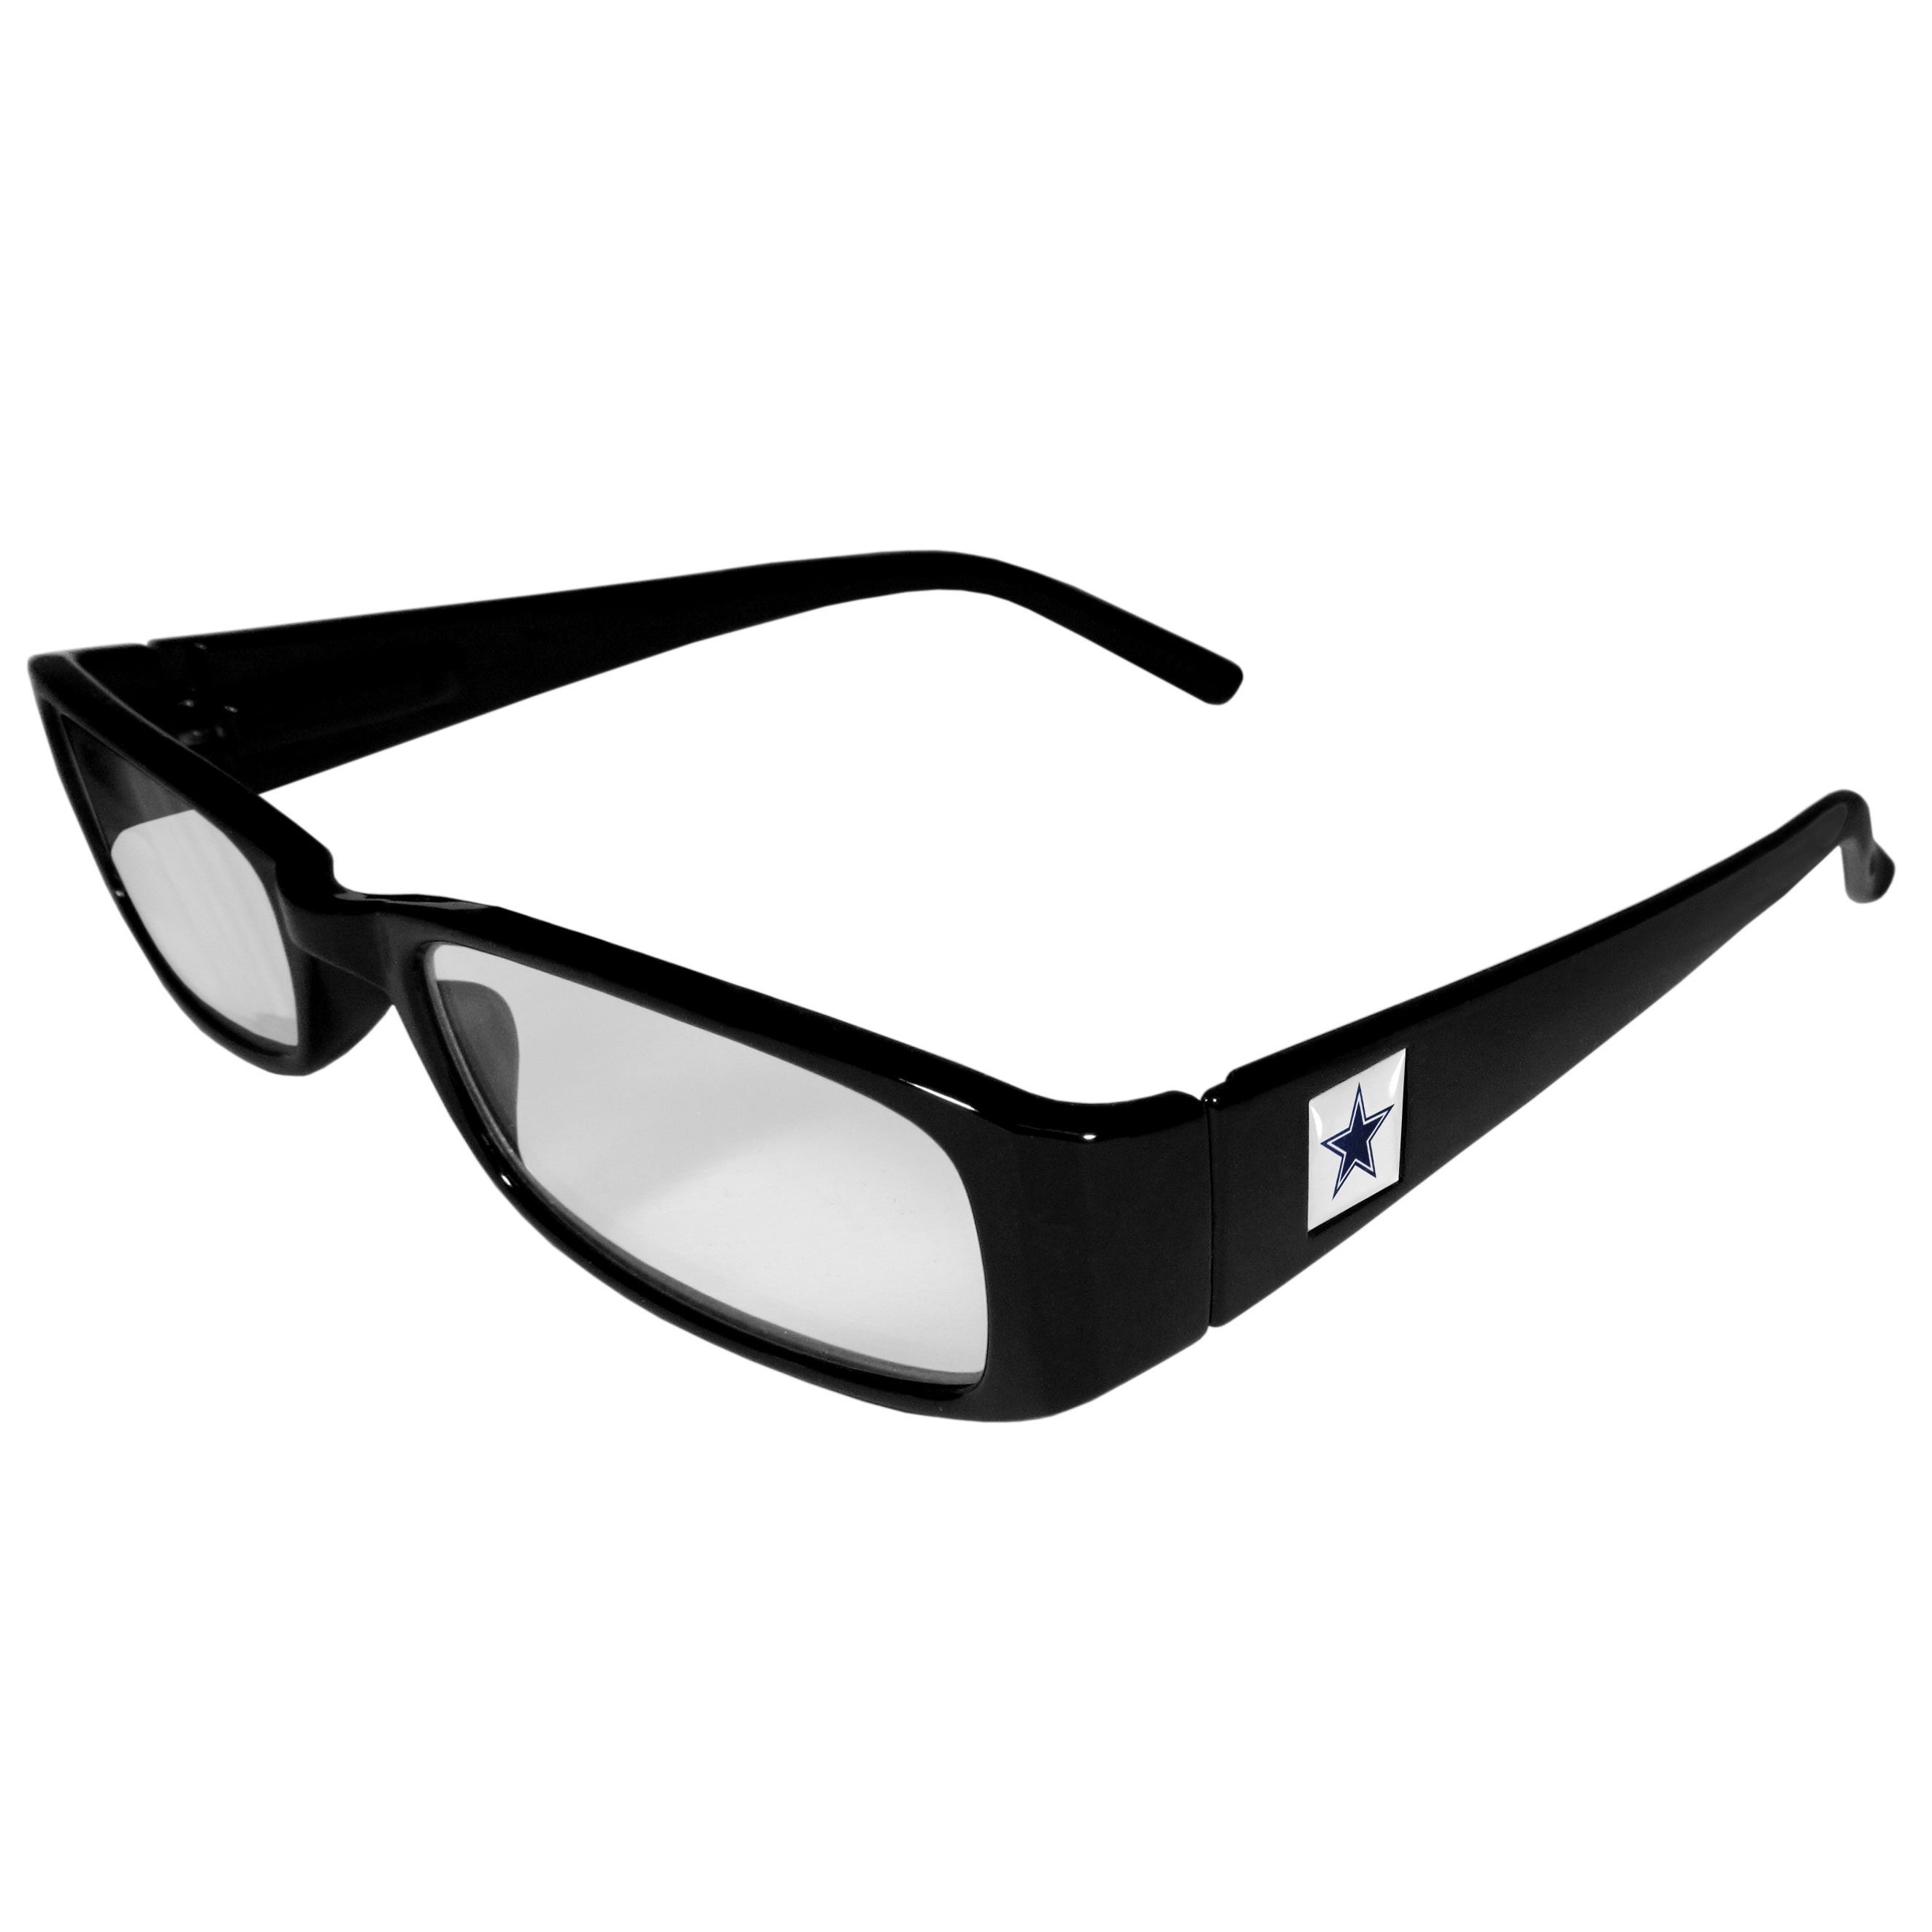 Dallas Cowboys Black Reading Glasses +1.25 - Our Dallas Cowboys reading glasses are 5.25 inches wide and feature the team logo on each arm. Magnification Power 1.25